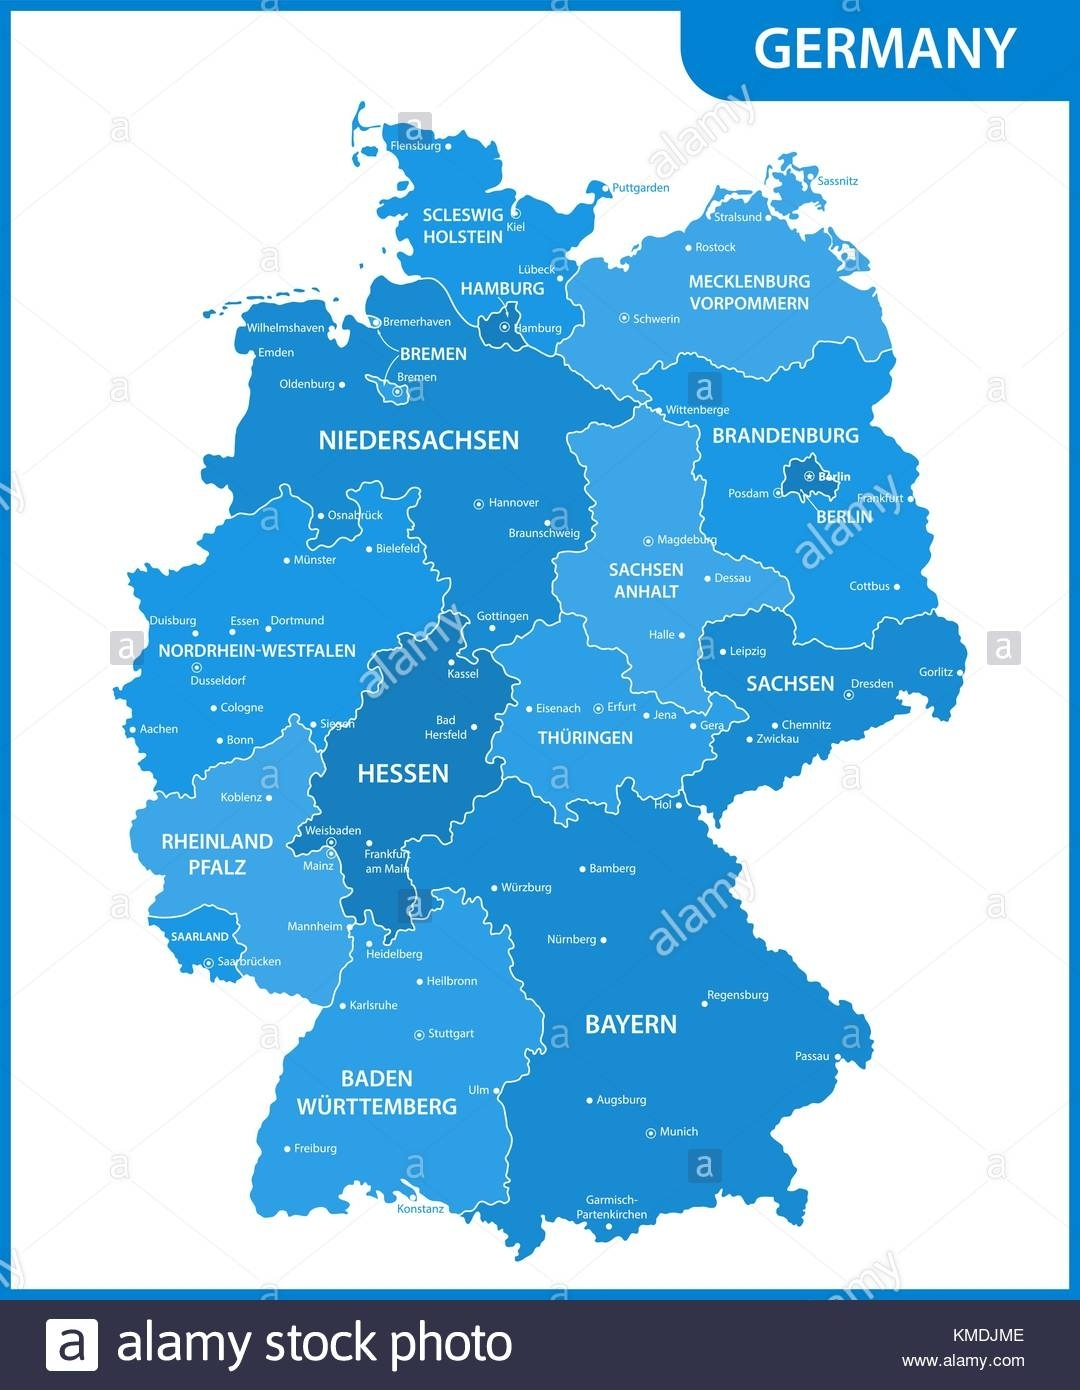 The Detailed Map Of The Germany With Regions Or States And Cities regarding Map Of Germany With States And Capitals In German